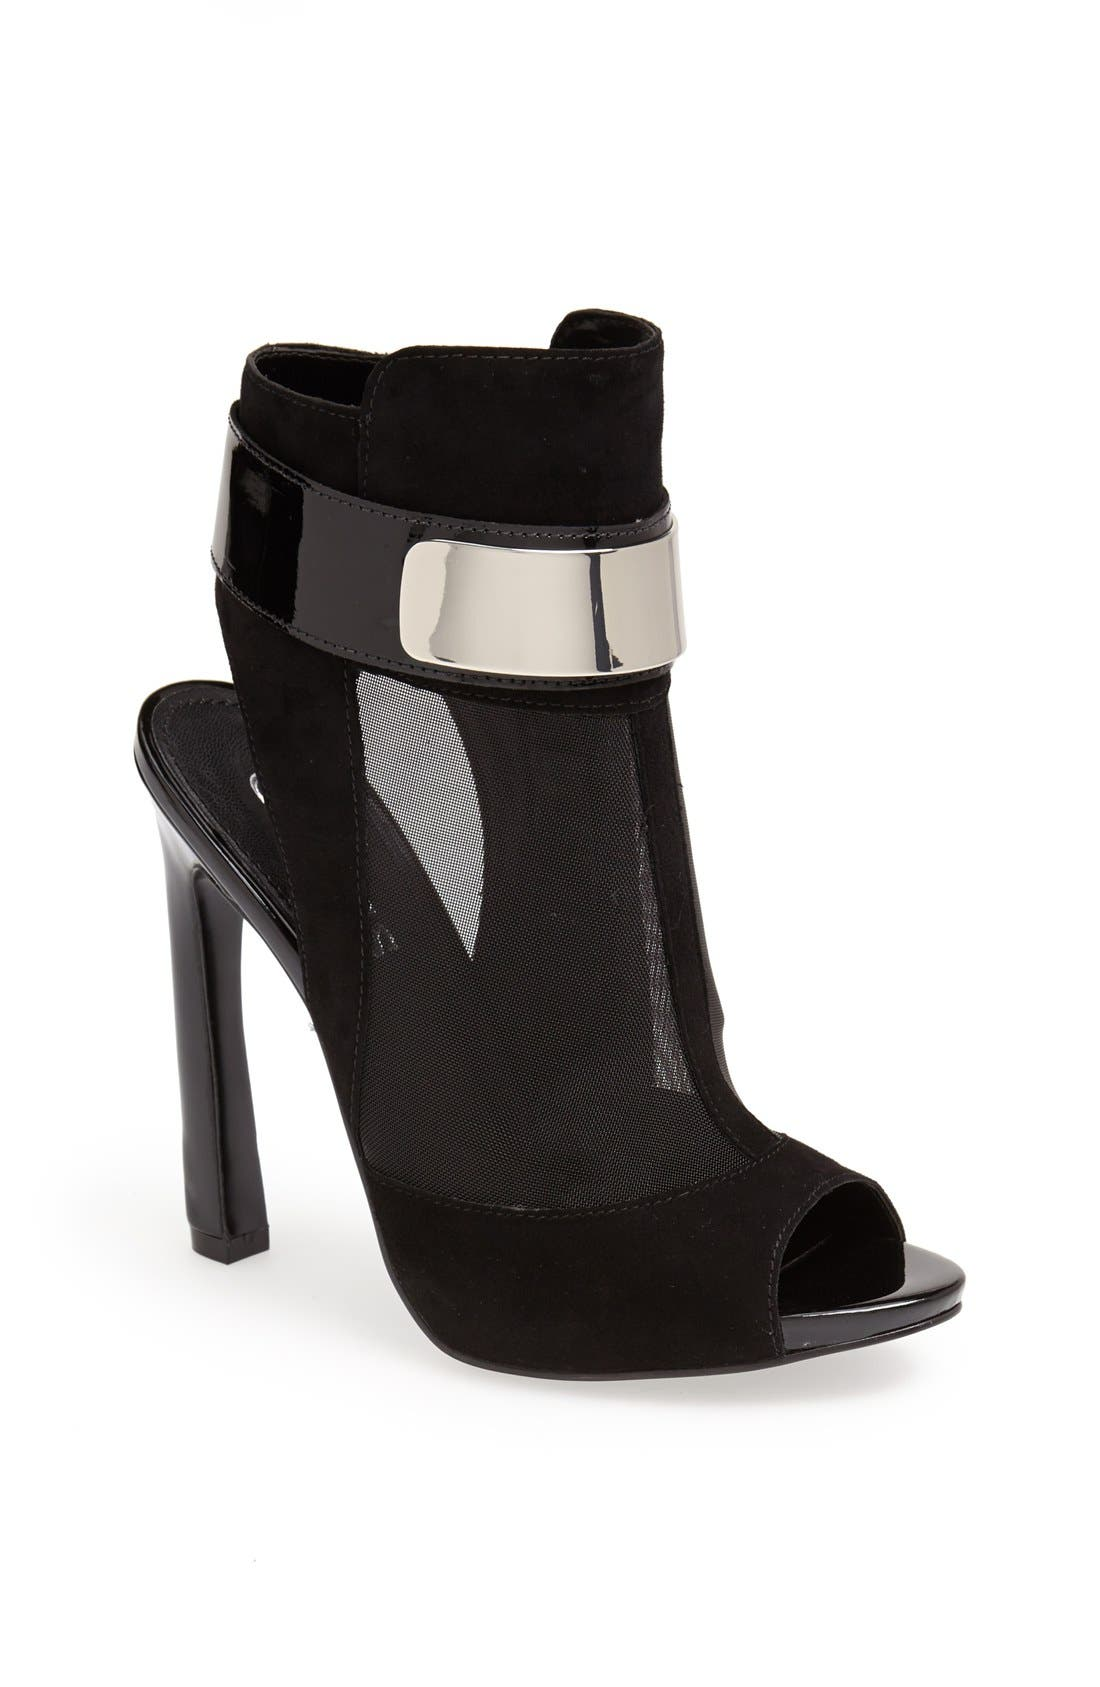 Main Image - GUESS 'Anavey' Suede & Mesh Peep Toe Bootie